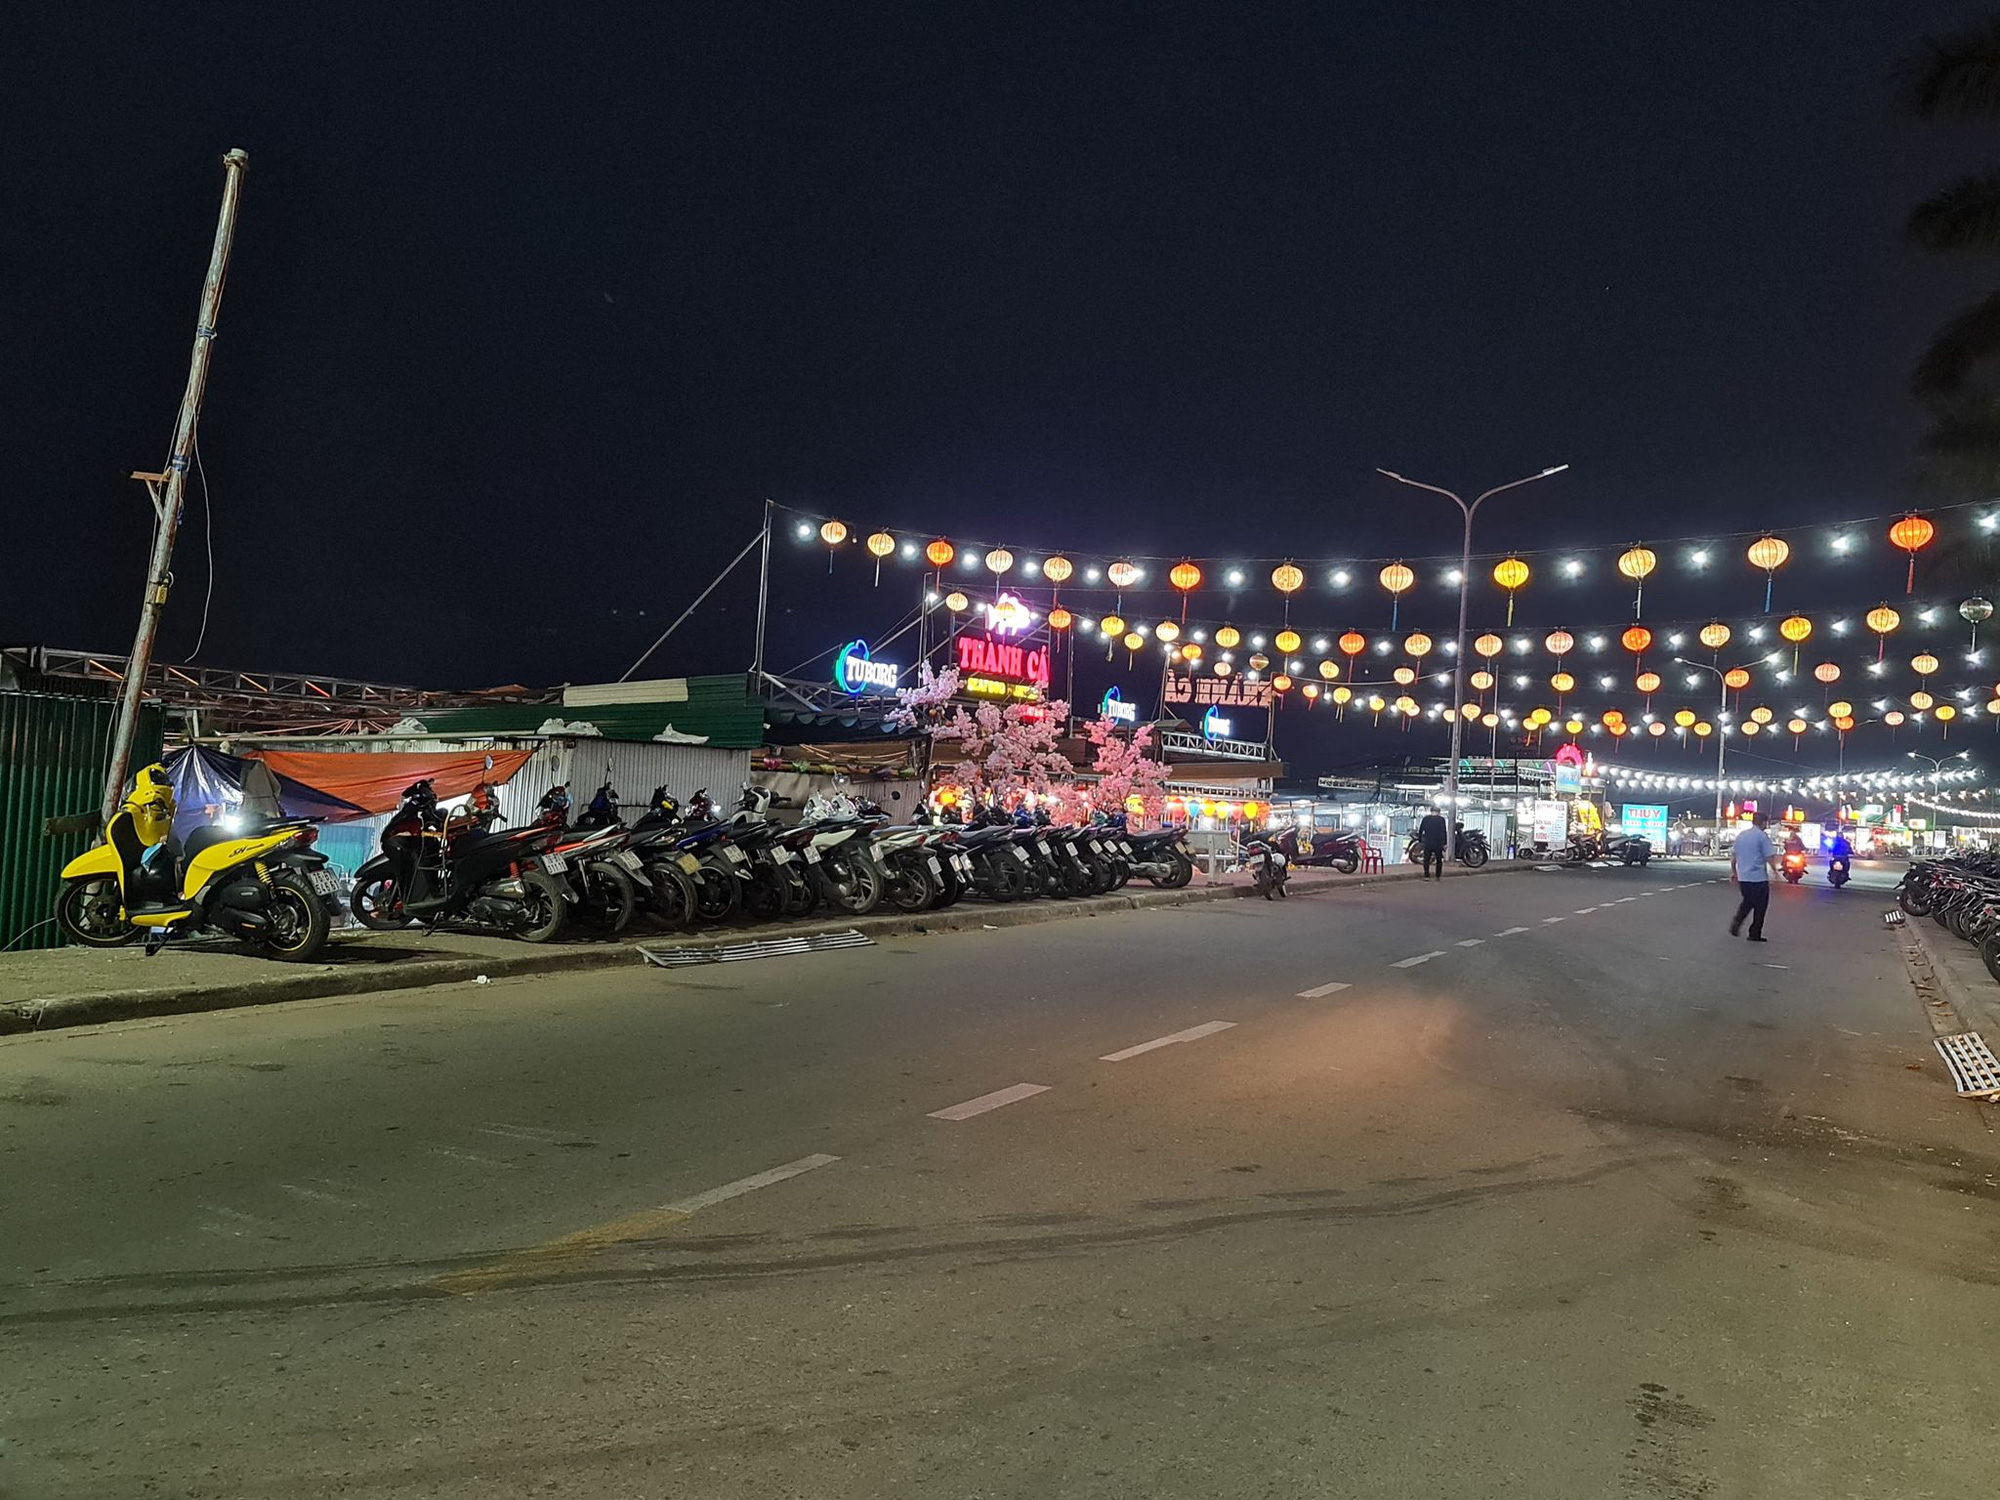 Motorbikes are parked on the sidewalks at Song Tra night market in Quang Ngai City, Quang Ngai Province, Vietnam, March 15, 2021. Photo: Tran Mai / Tuoi Tre